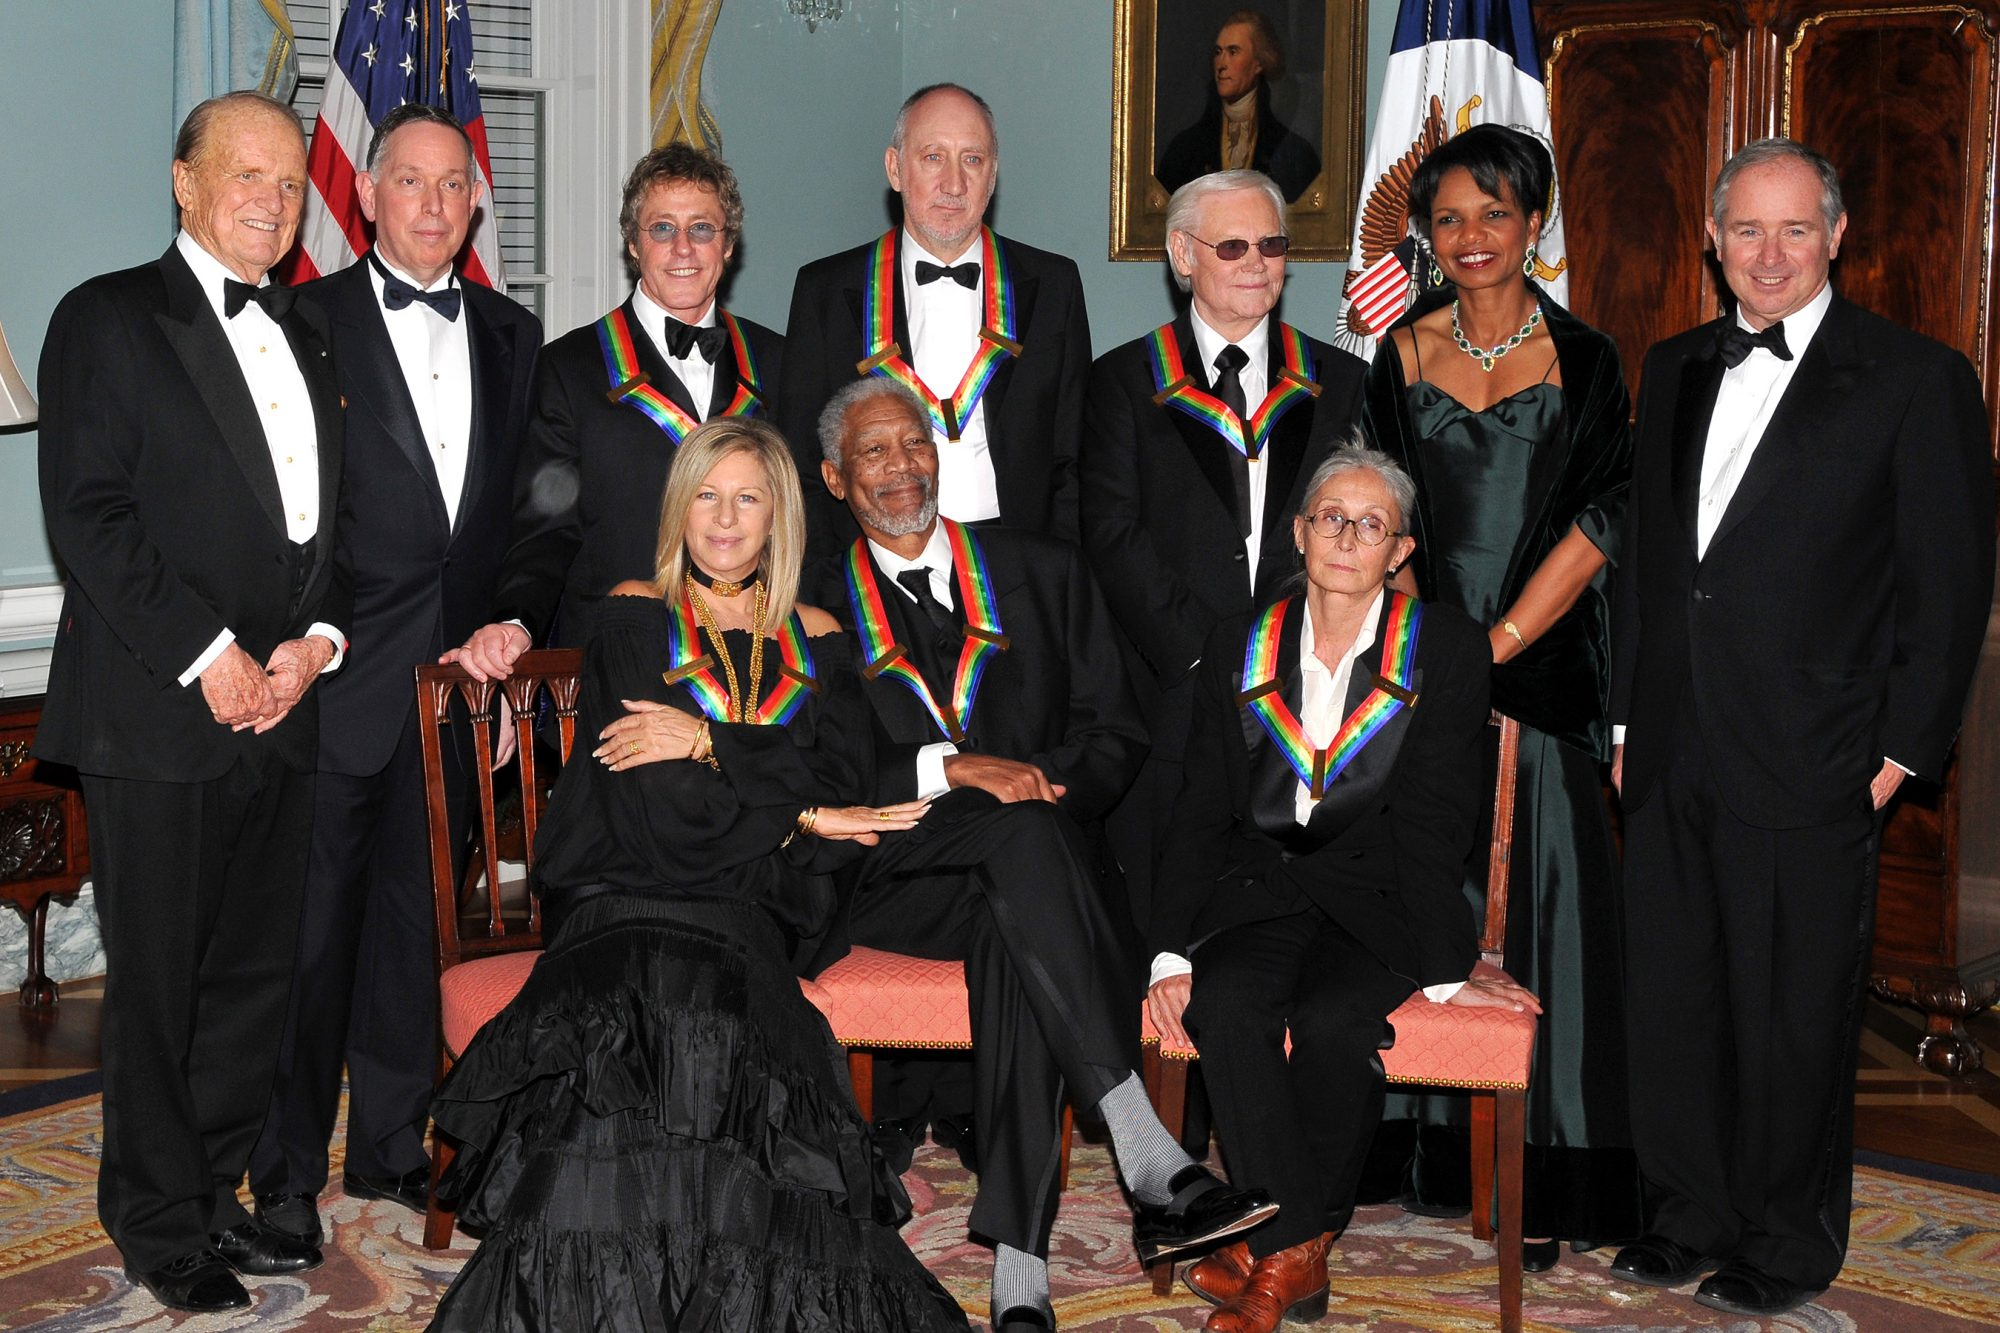 31st Annual Kennedy Center Honors